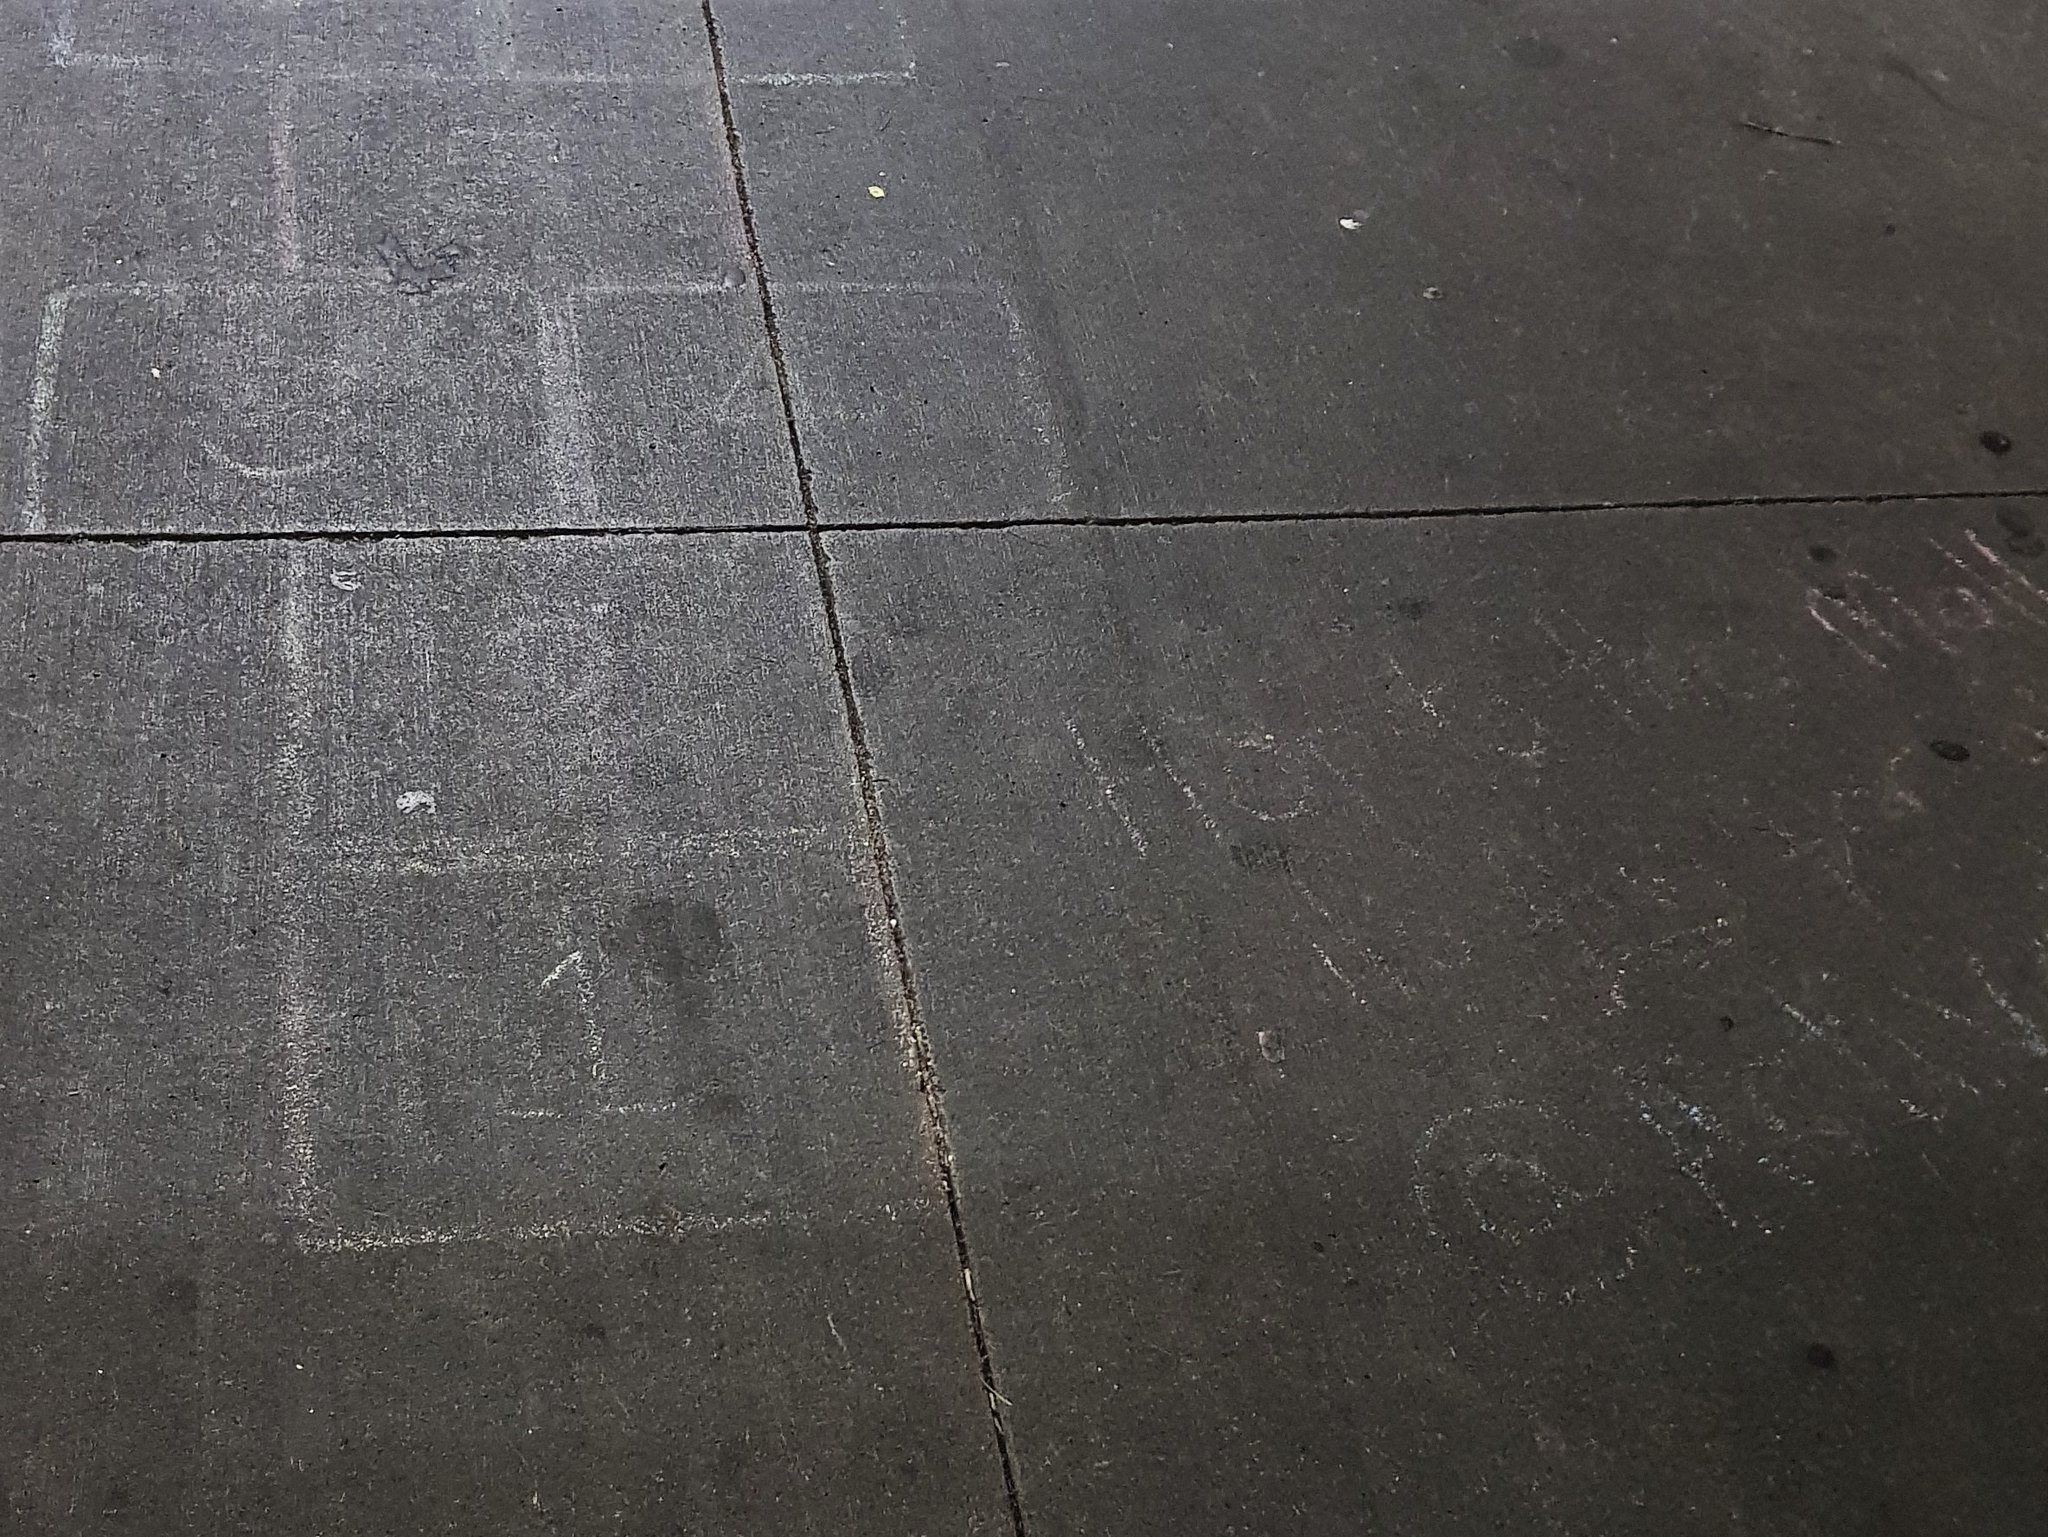 20180731_093235 Cryptic messages on slate grey